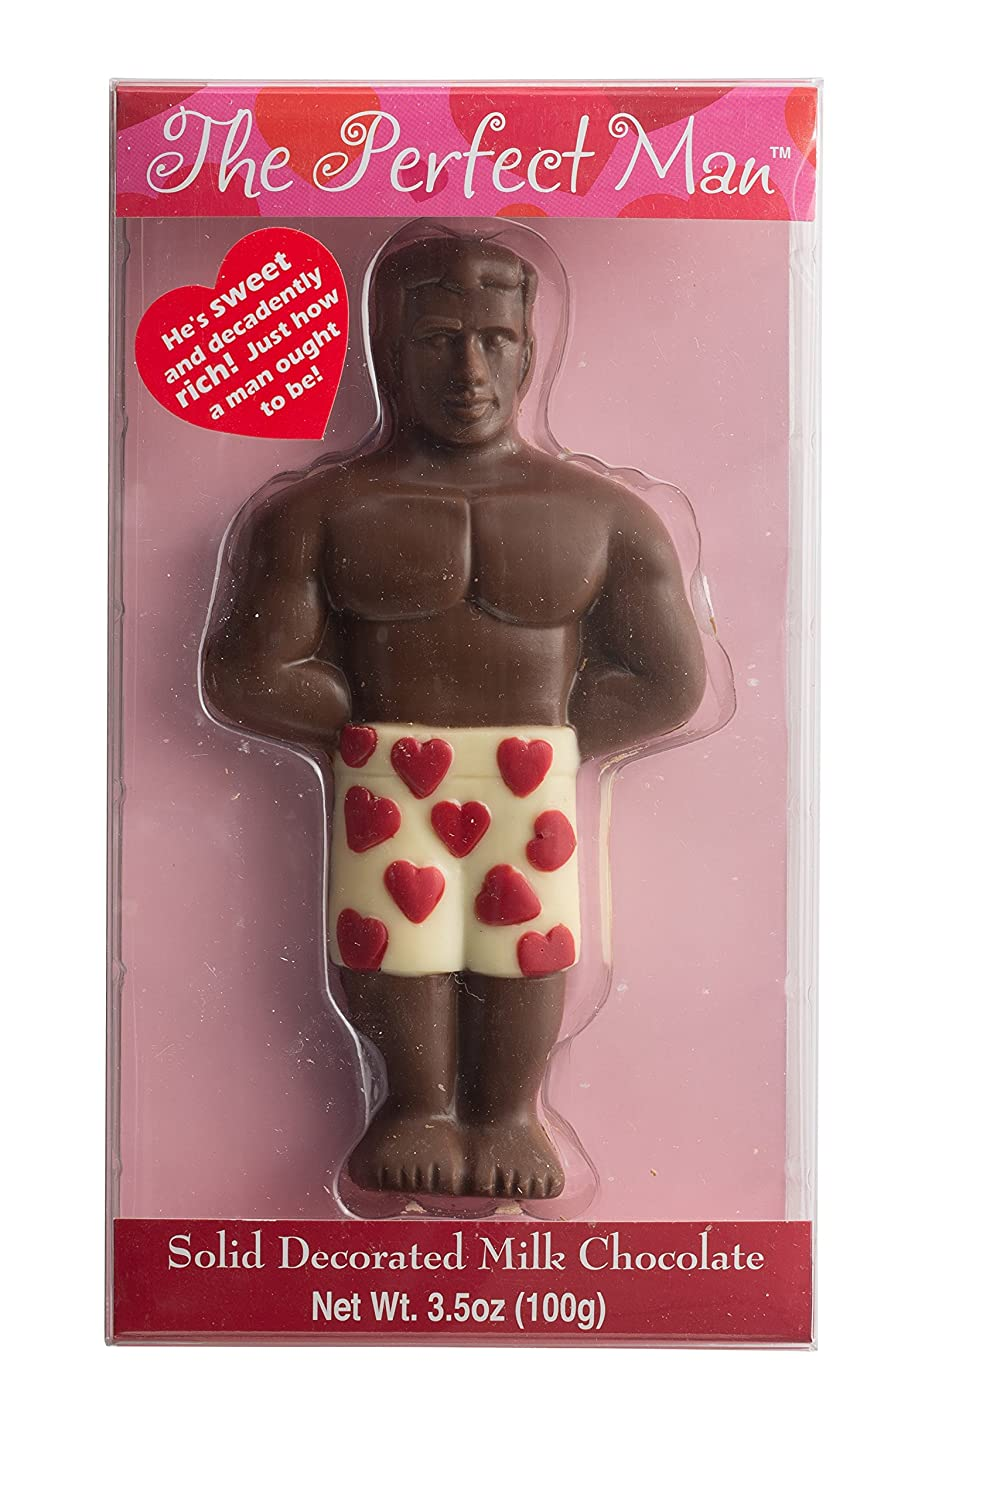 Amazon.com : The Perfect Man Lovers Gift, Fun For Your Boyfriend, Girlfriend  Or Any Friend, Includes Chocolate, Fuzzy Handcuffs, Body Scratcher, ...